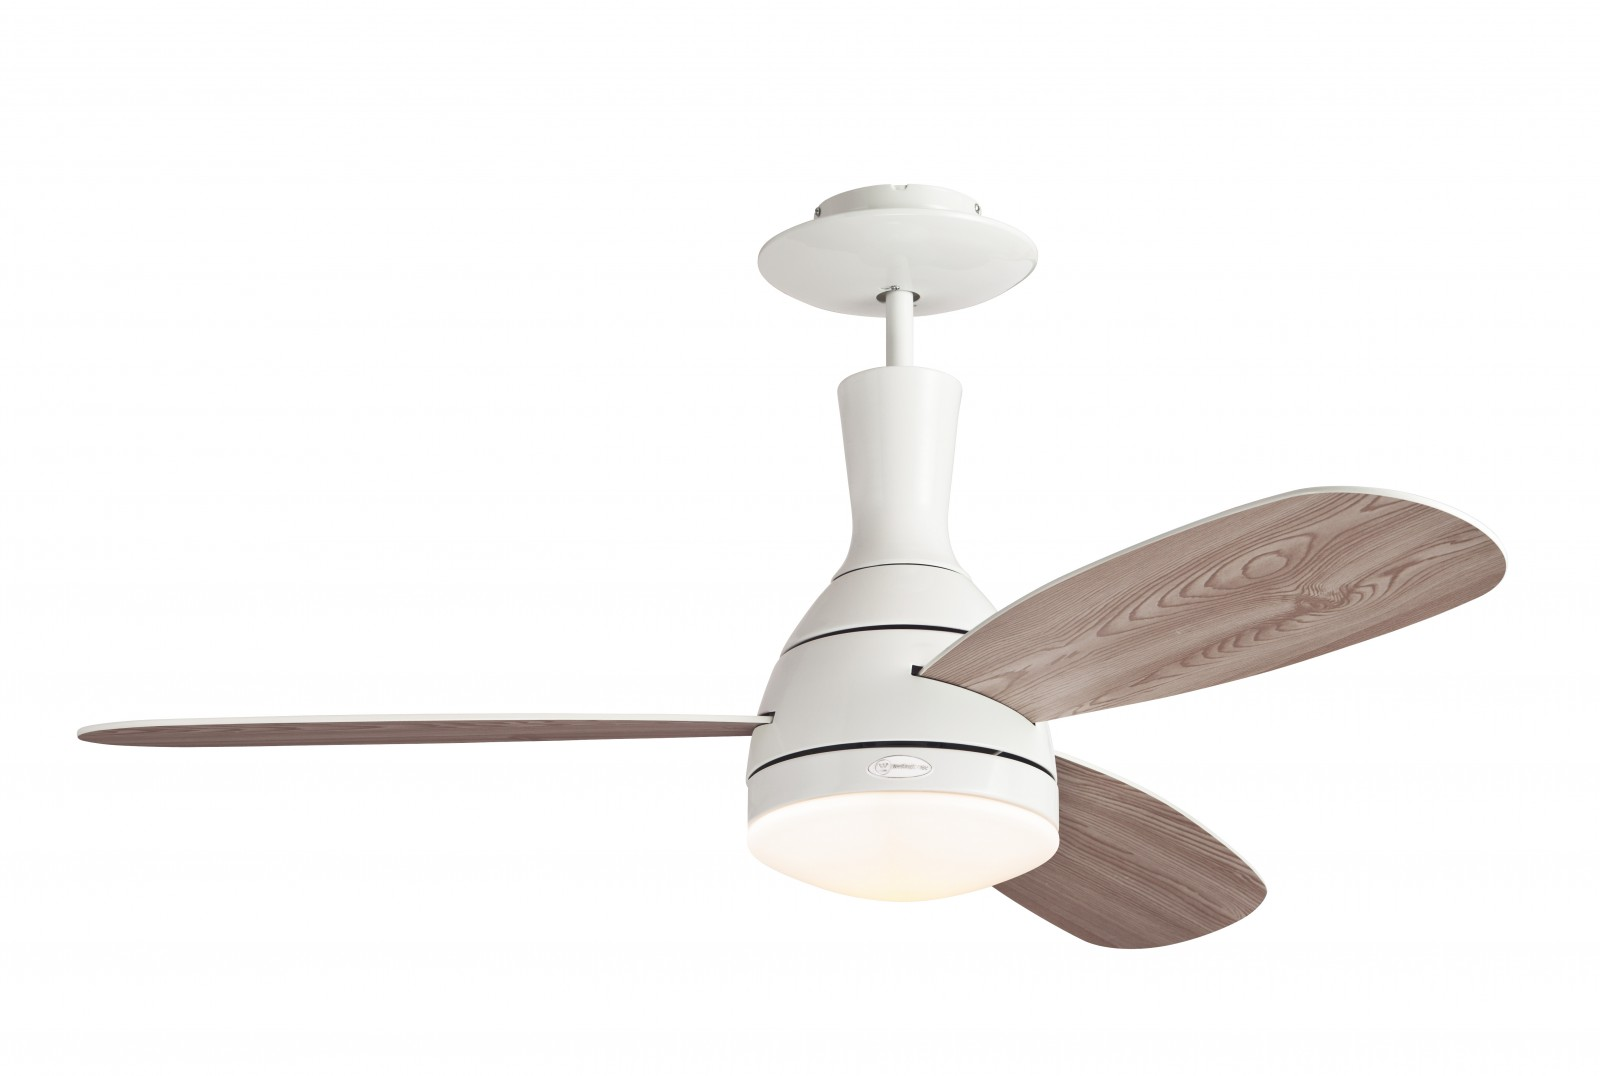 Westinghouse ceiling fan cumulus with remote control ceiling fans westinghouse ceiling fan cumulus with remote control bild 2 aloadofball Choice Image